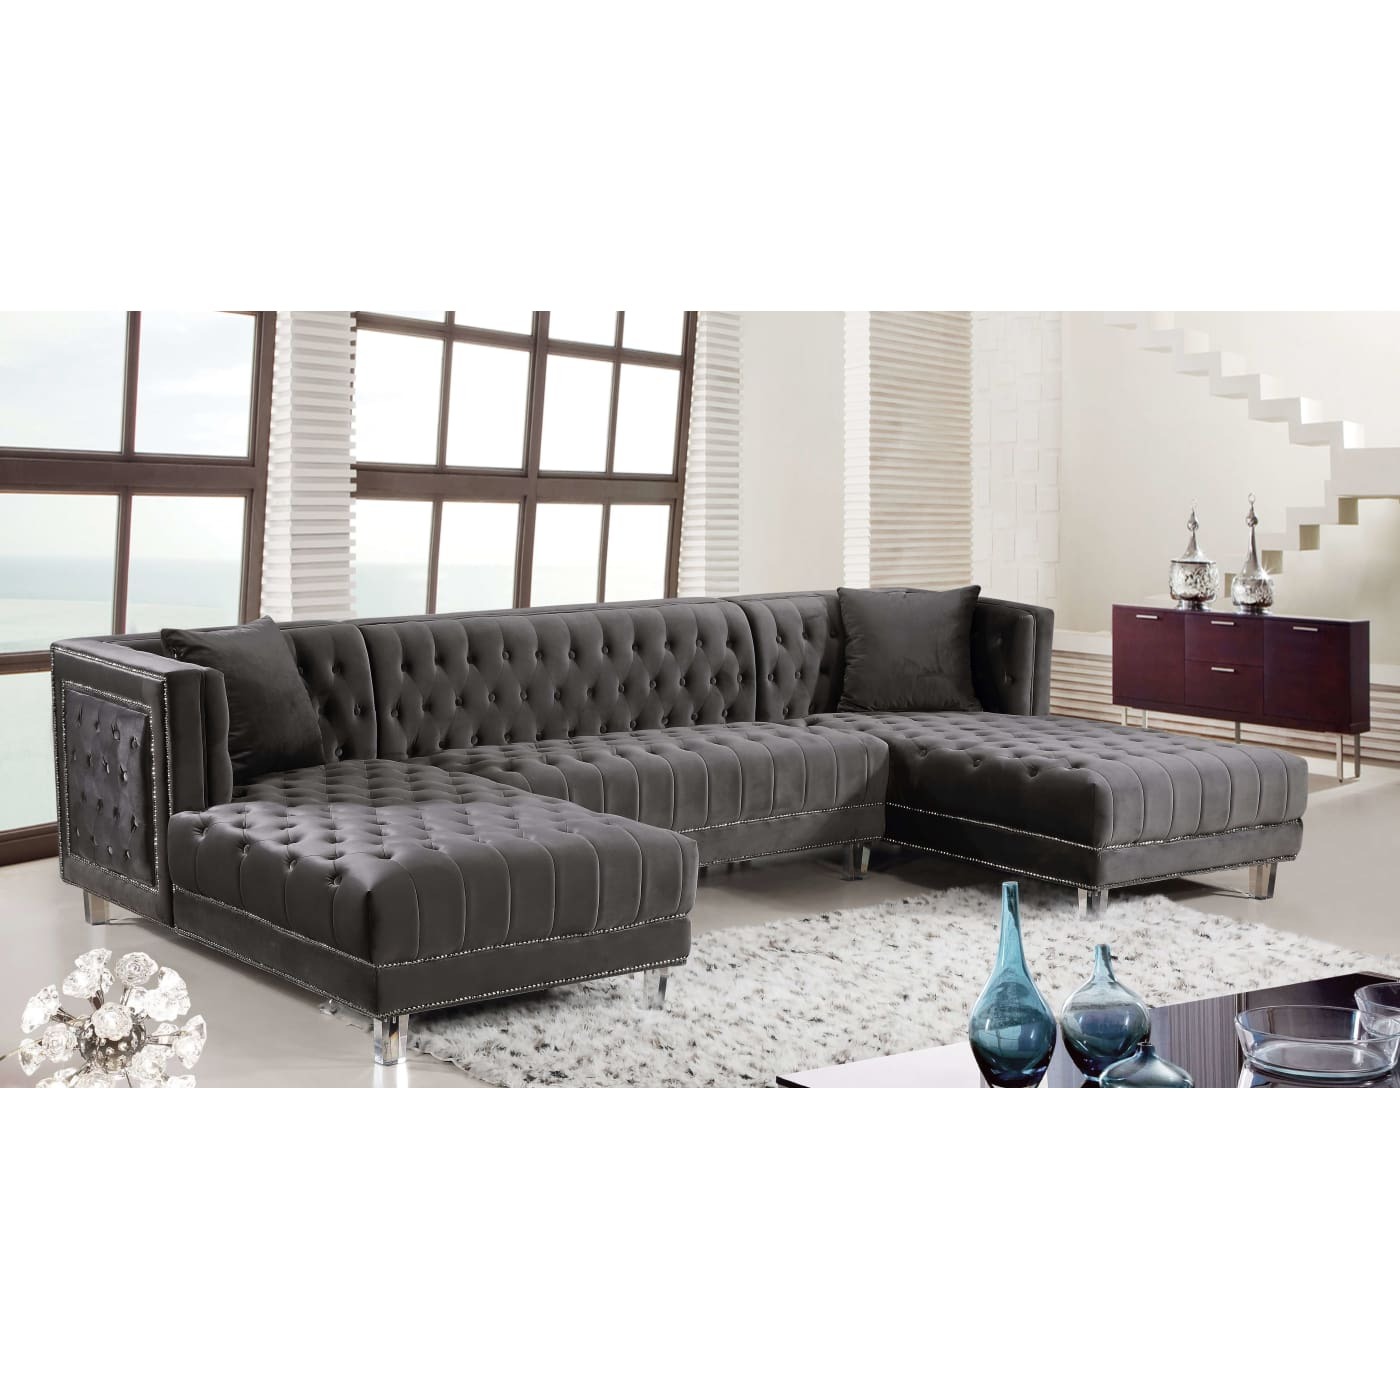 sleeper amazing paint sectional with the on artistic top lamp design oversized table elegant corner cushions four beside grey wooden gray sofa